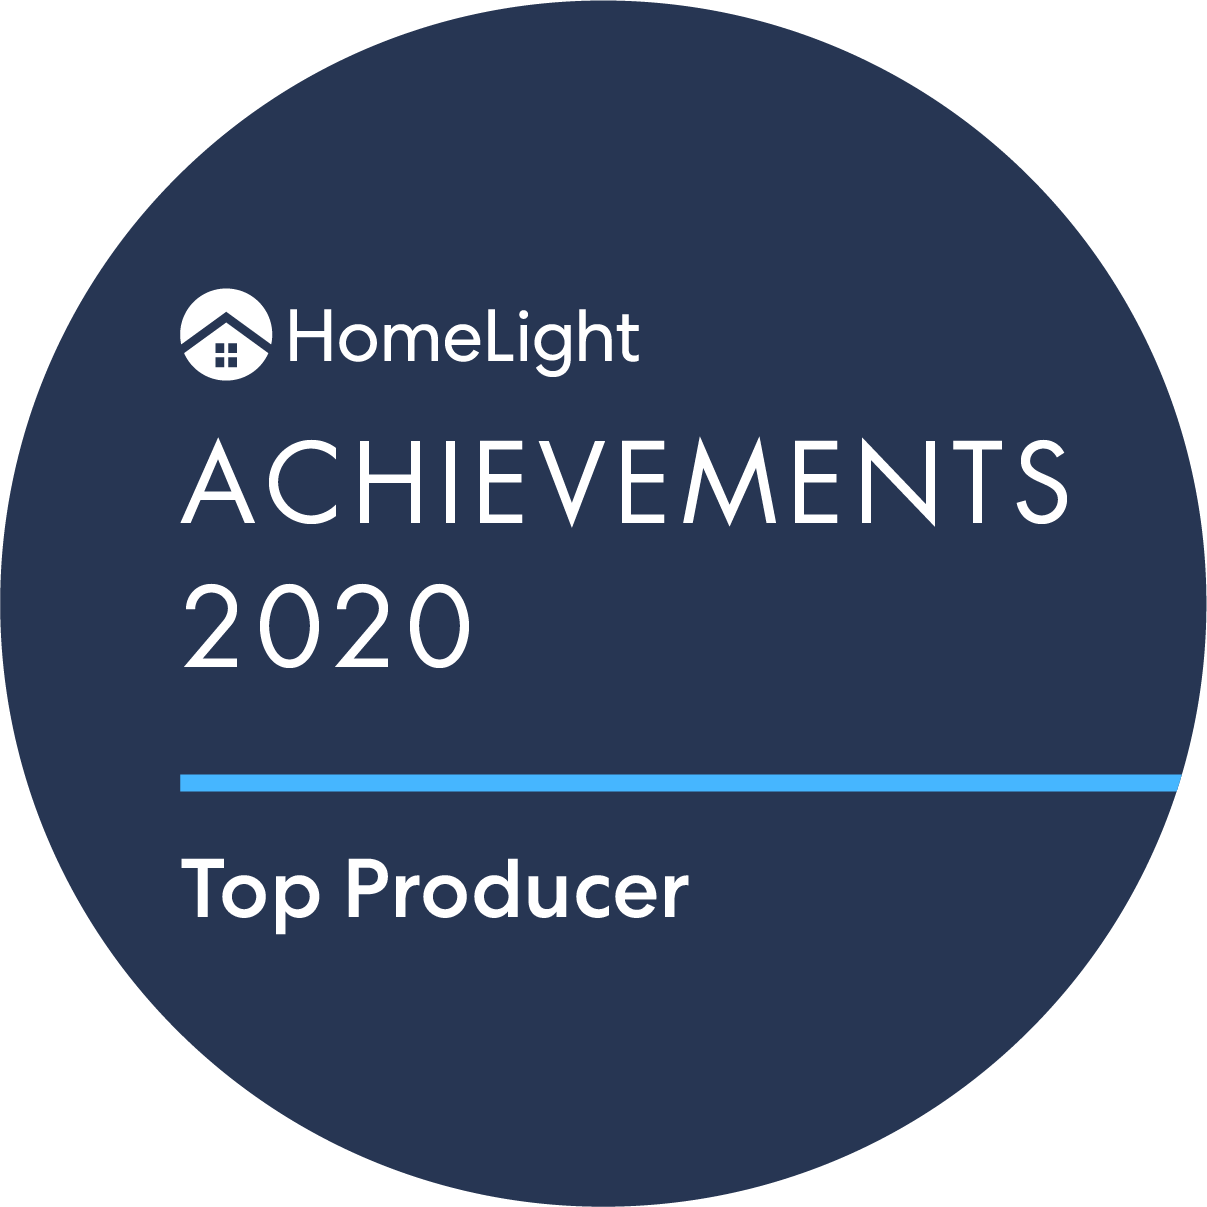 HomeLight Achievement Winner - Atha Team at Keller Williams - Top Colorado Real Estate Agent